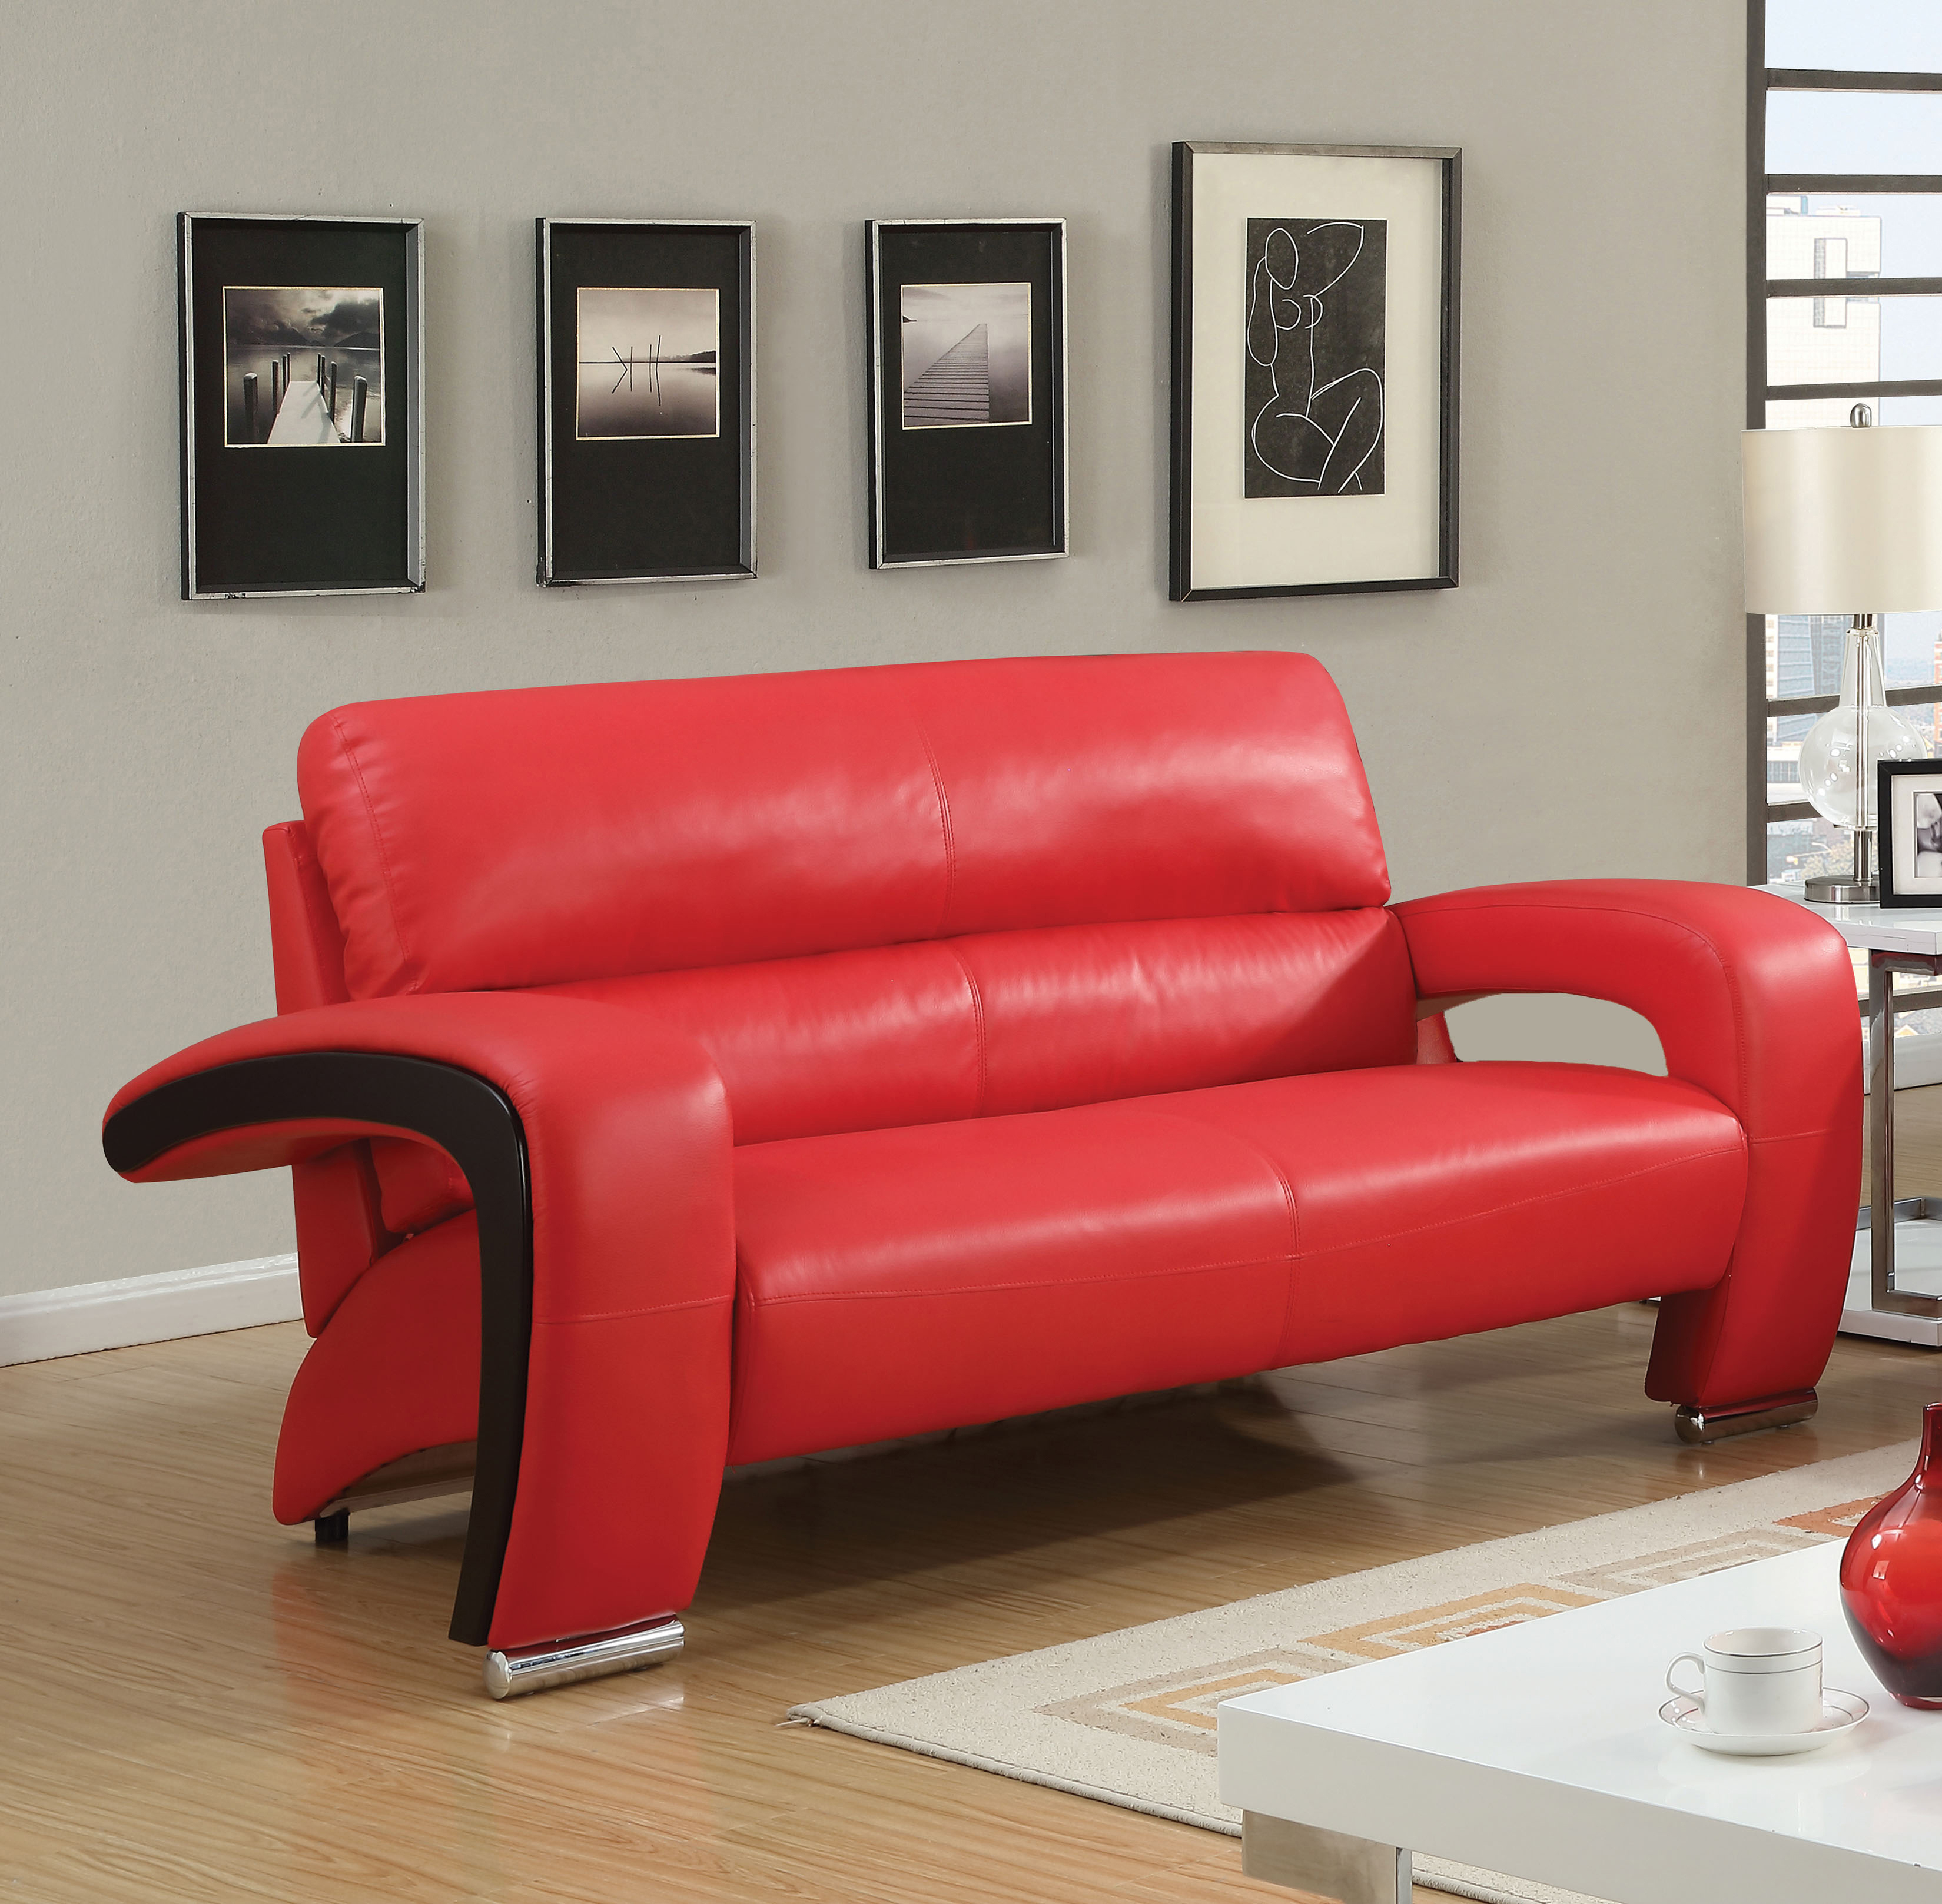 Furniture of America Kody Contemporary Loveseat, Multiple Colors